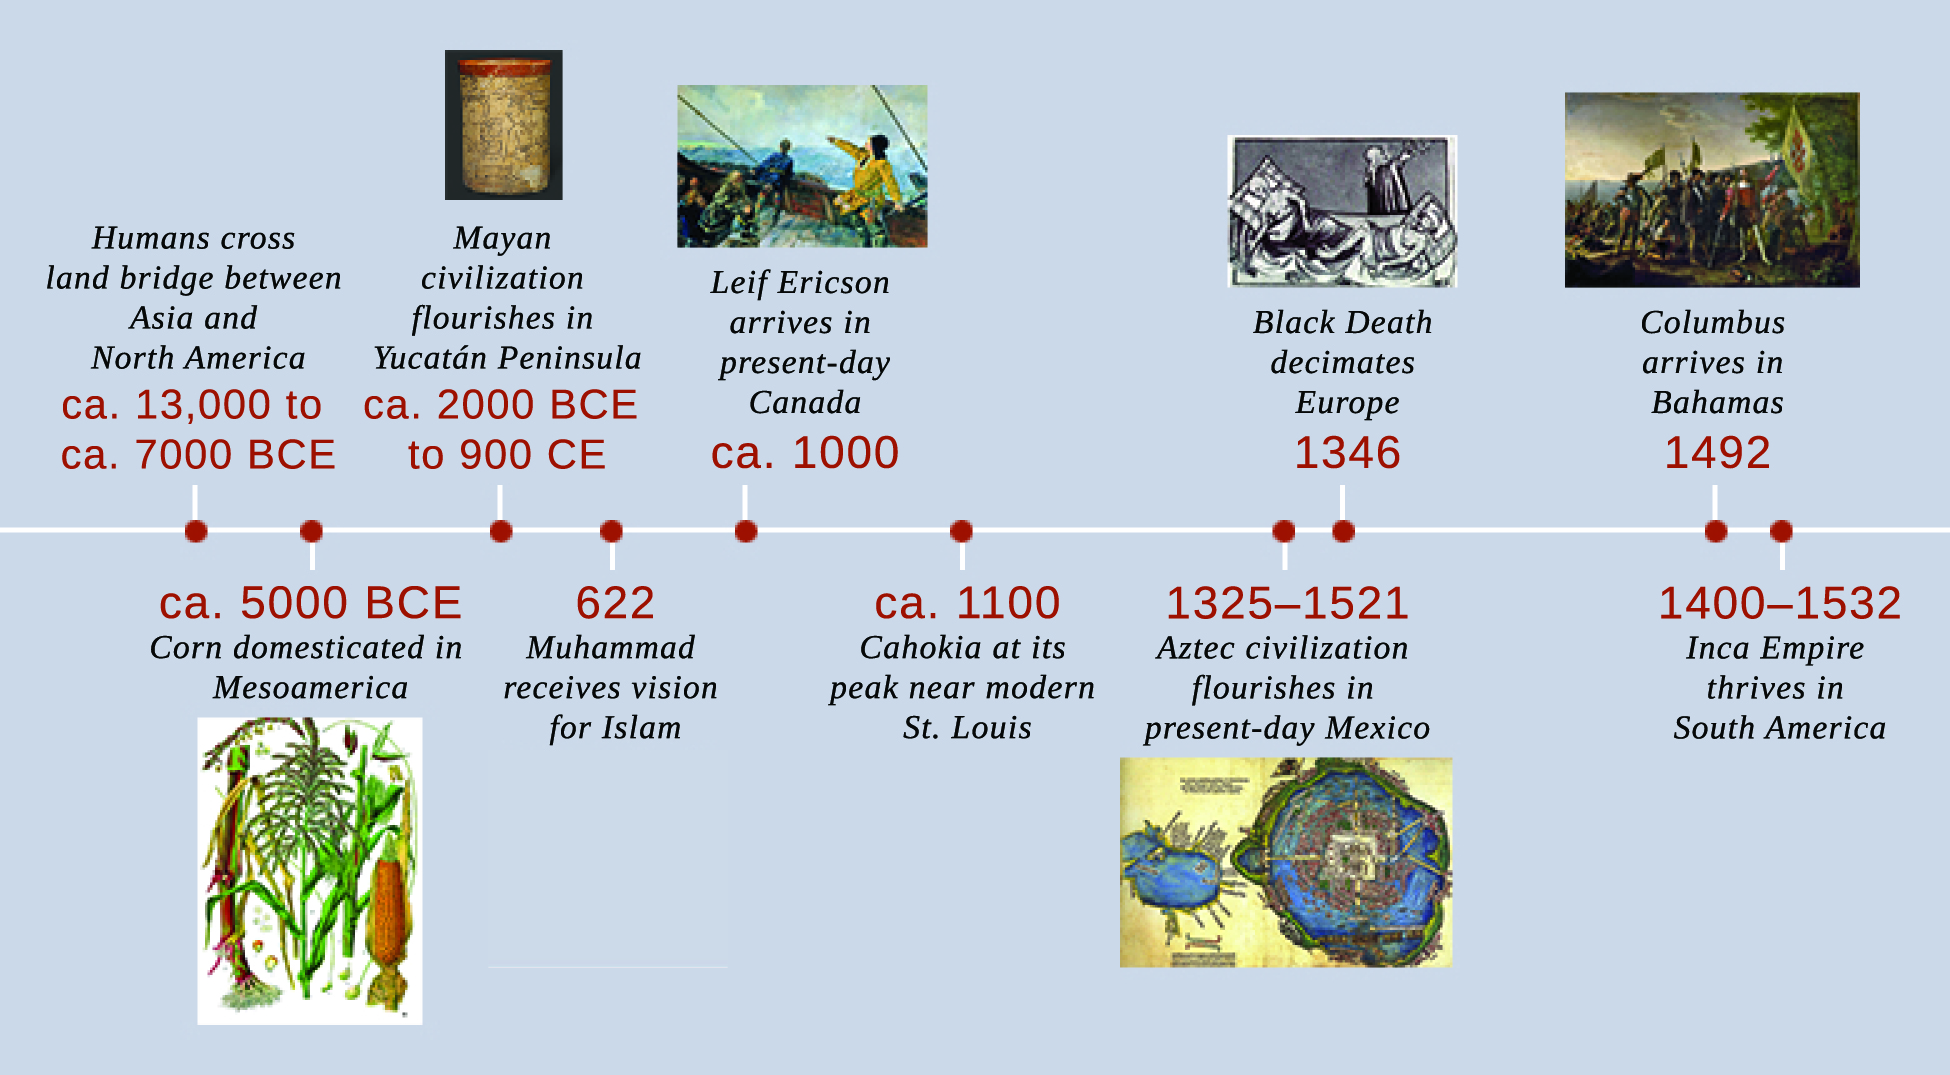 A timeline shows important events of the era. In ca. 13,000 to ca. 7000 BCE, humans cross the land bridge between Asia and North America. In ca. 5000 BCE, corn is domesticated in Mesoamerica; an illustration of the corn plant is shown. In ca. 2000 BCE to ca. 900 CE, Mayan civilization flourishes in the Yucatán Peninsula; Mayan pottery is shown. In 622, Muhammad receives the vision for Islam. In ca. 1000, Leif Ericson arrives in present-day Canada; a painting depicting Ericson's arrival is shown. In ca. 1100, Cahokia is at its peak near modern St. Louis. In 1325–1521, Aztec civilization flourishes in present-day Mexico; a map of Tenochtitlán is shown. In 1346, the Black Death decimates Europe; an illustration of Black Death victims is shown. In 1492, Columbus arrives in the Bahamas; a painting of Columbus's arrival is shown. In 1400–1532, the Inca Empire thrives in South America.